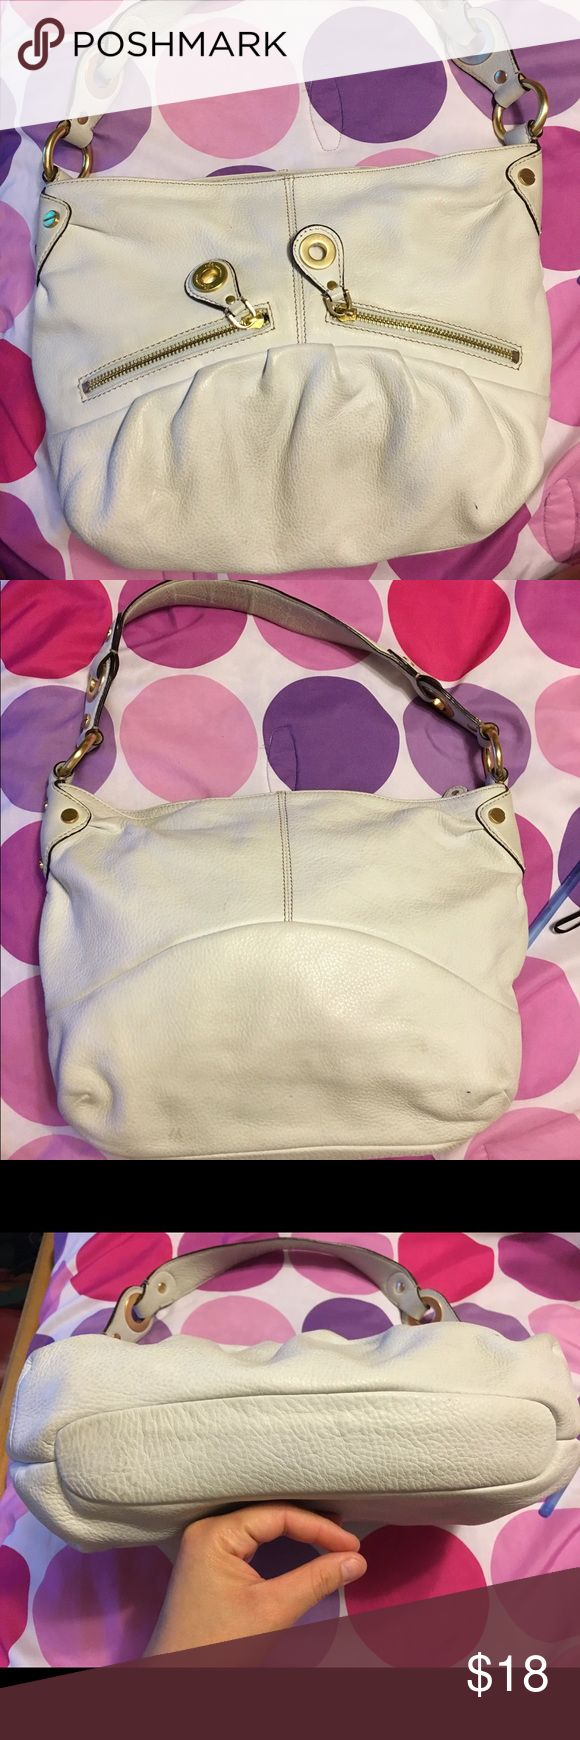 White B Makowsky handbag. White B Makowsky handbag. Measurements are: width is 11 inches, length is 10 inches, side is 3 inches and handle is 18 inches. Clean from inside, dirty from the outside(can be cleaned with leather cleaner). It is a really soft leather. Price is firm. B Makowsky Bags